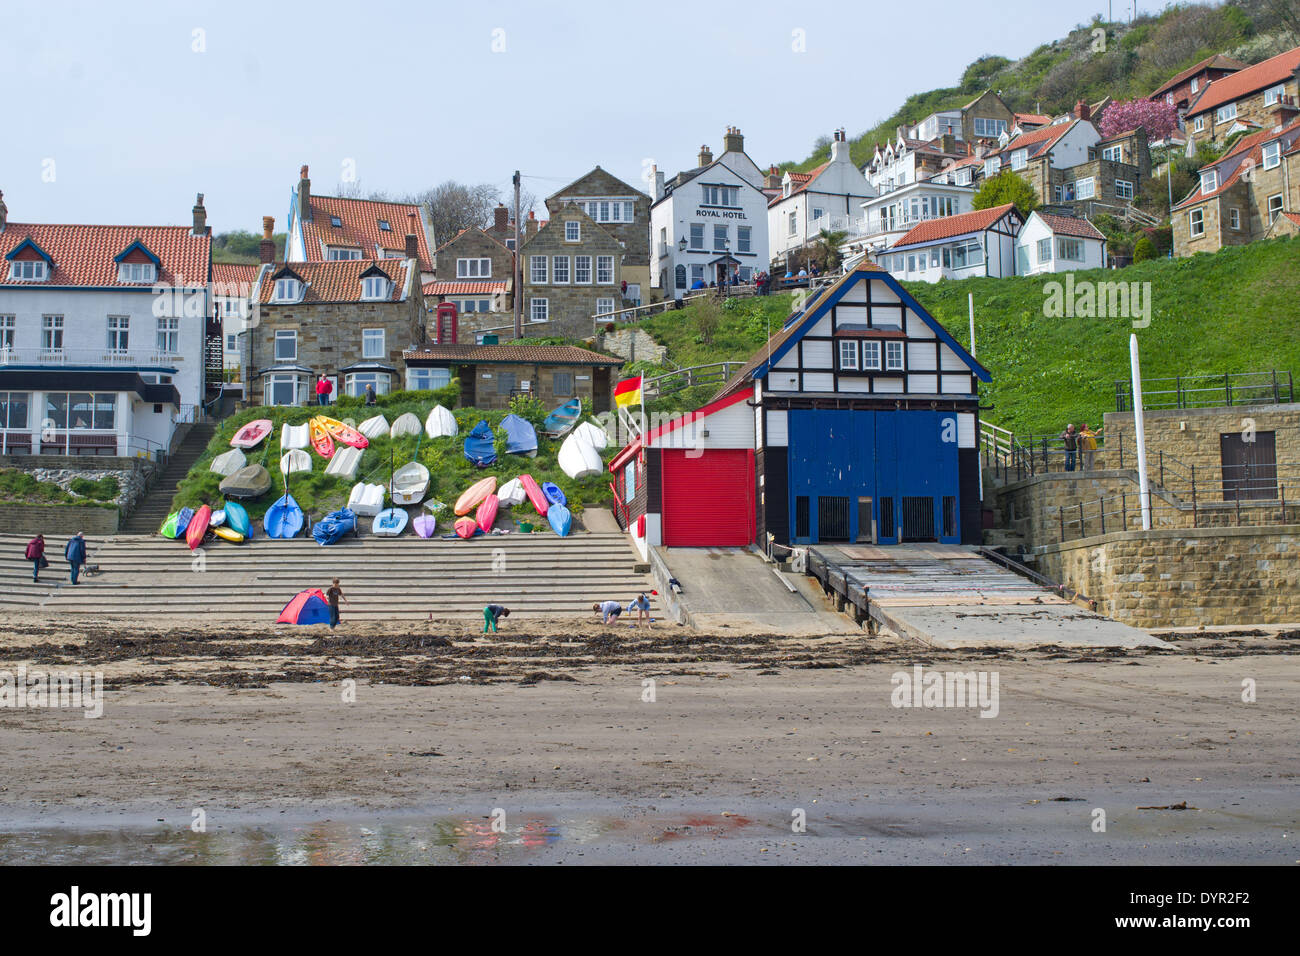 Runswick Bay near Whitby a traditional small fishing village with old fishermans cottages. Stock Photo